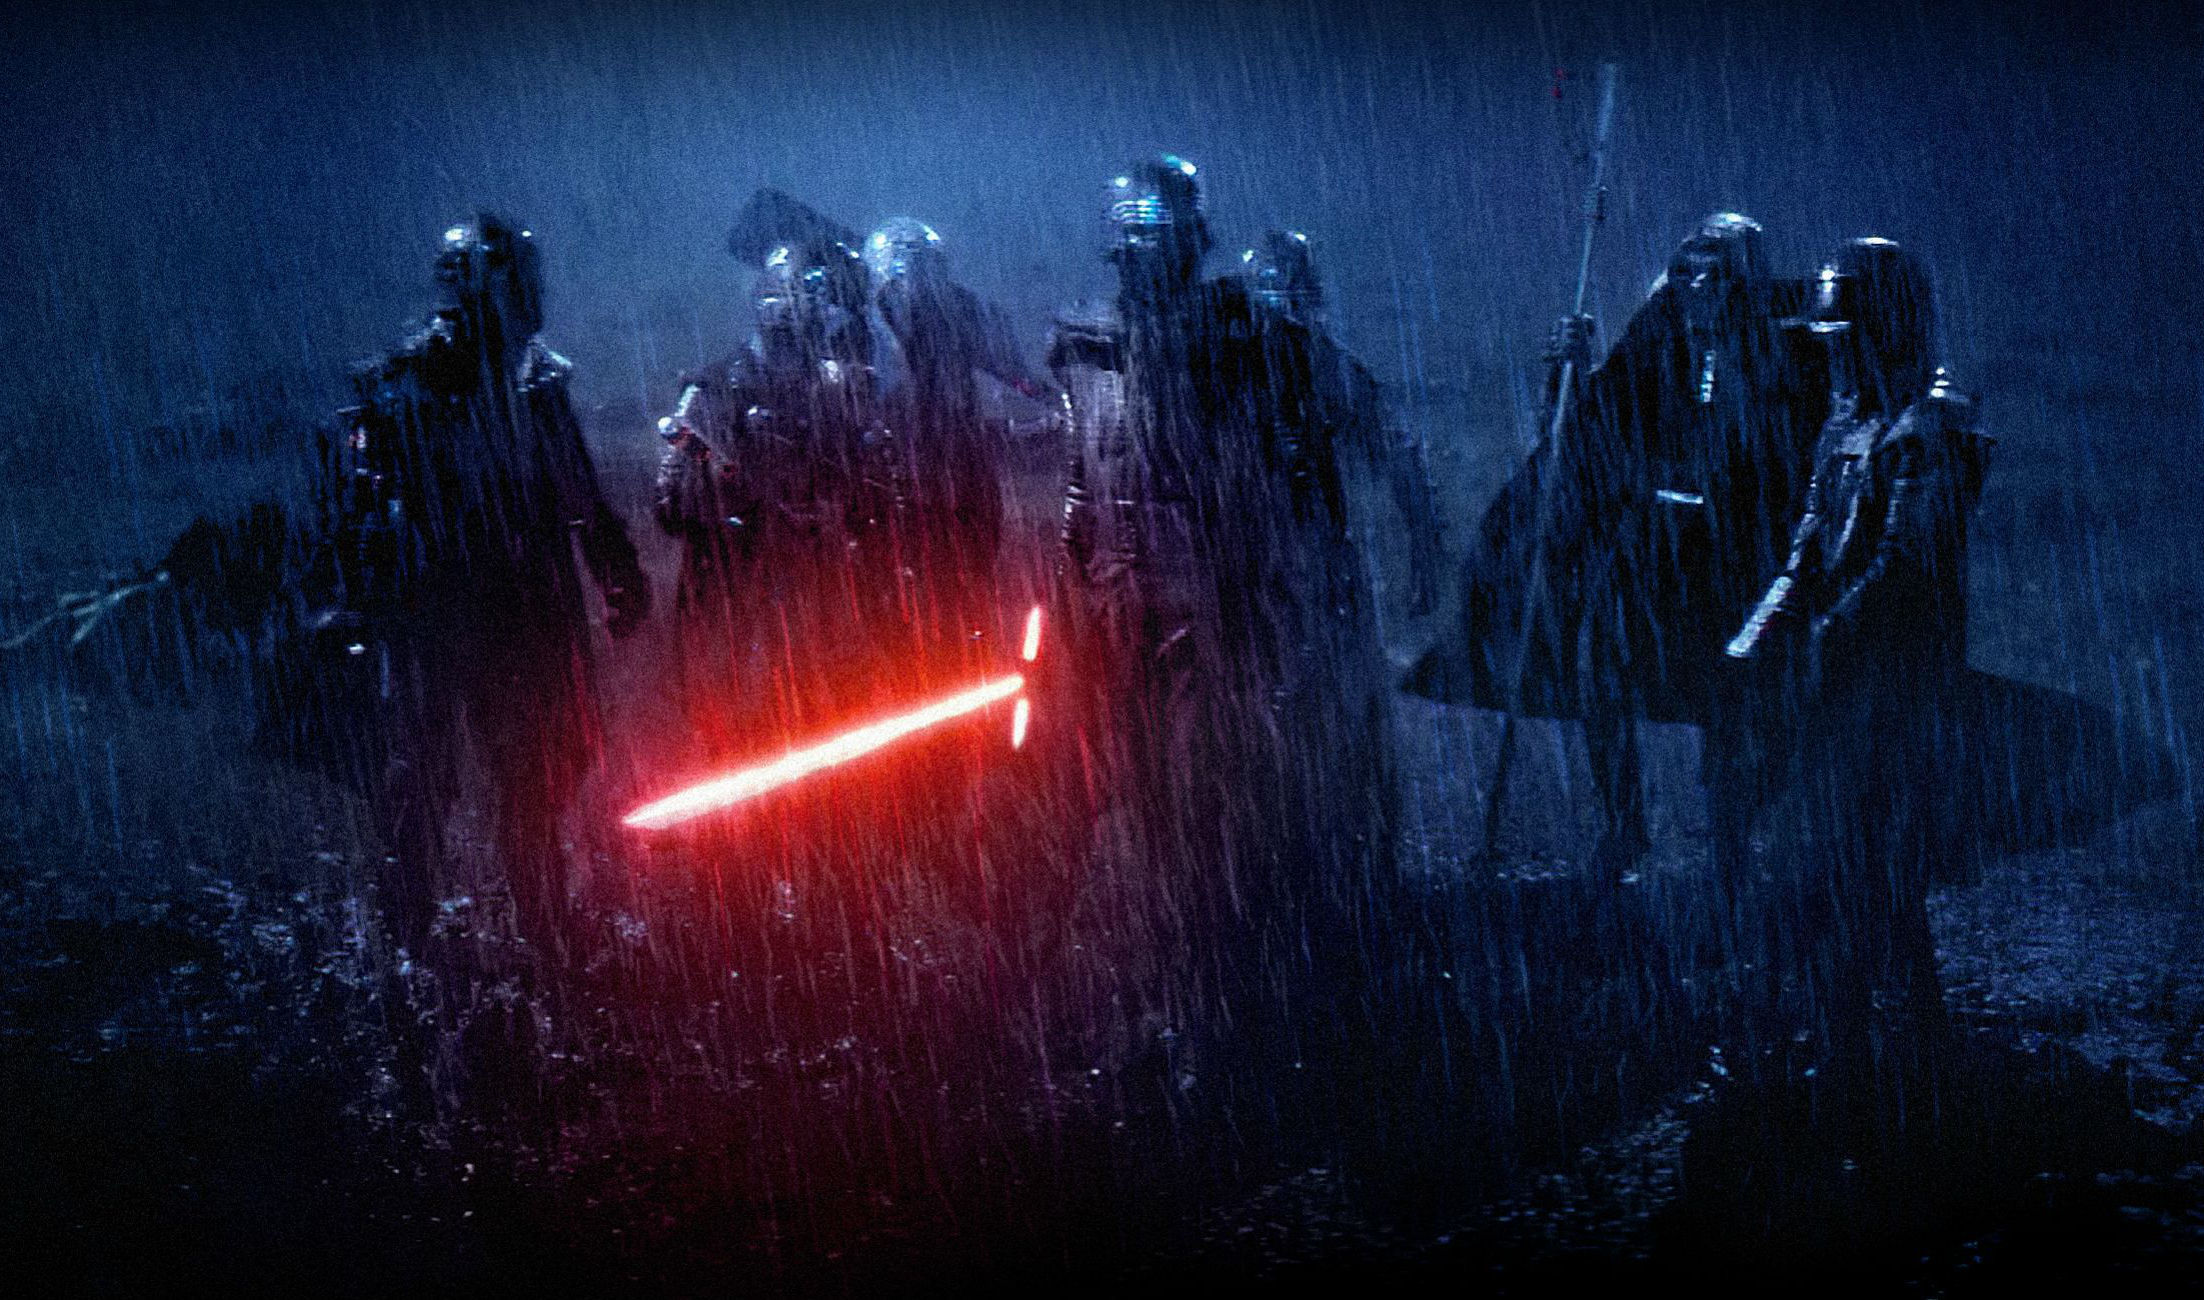 Kylo Ren kylo ren 39176181 2204 1300 Star Wars: The Force Awakens   Record Breaking Blockbuster AND New Age Psychology Resource?